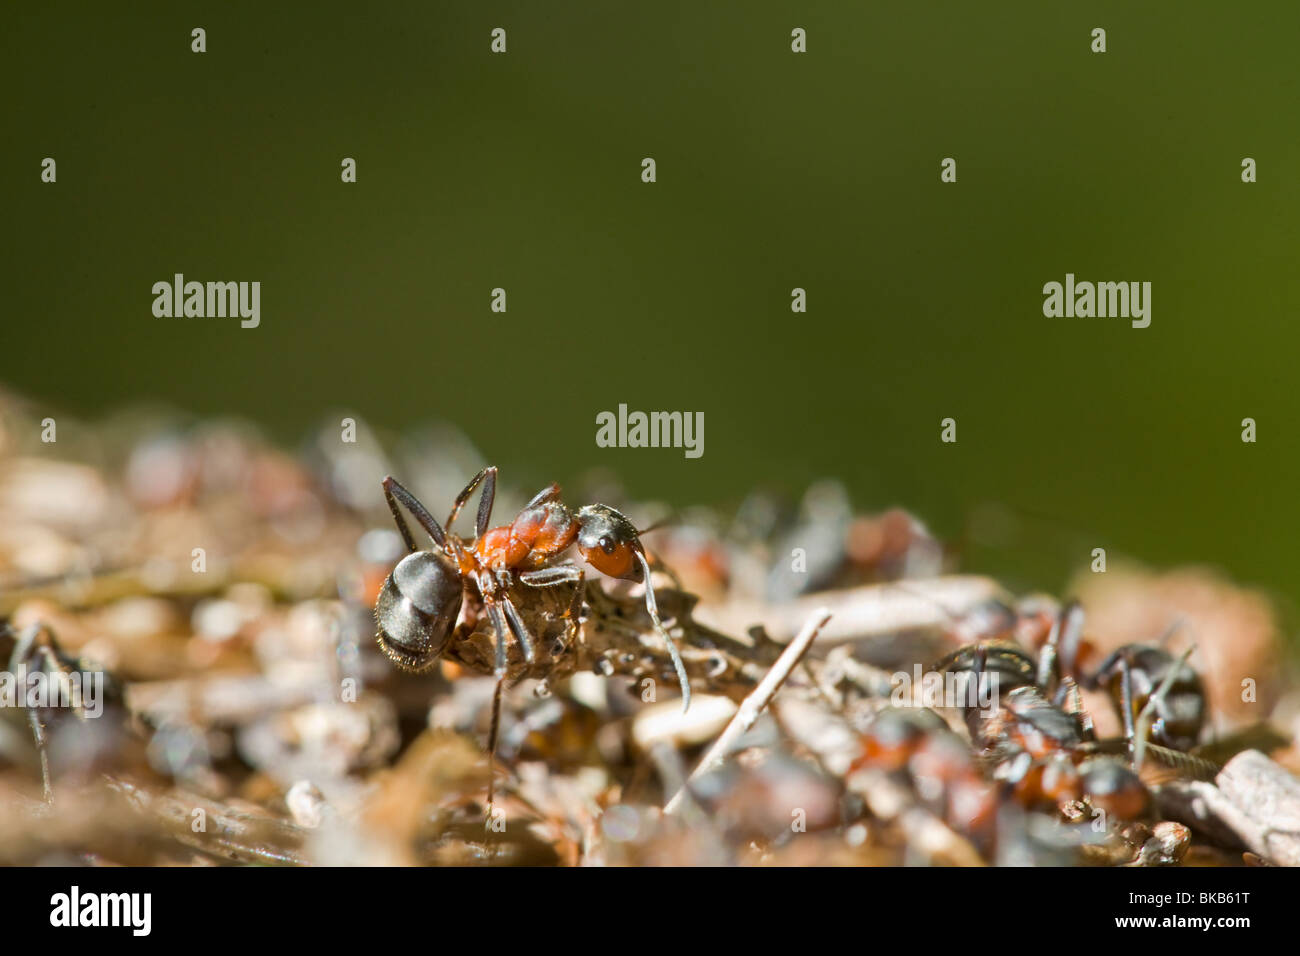 Southern Wood Ant Formica rufa Insects Europe Scandinavia Sweden Stock Photo